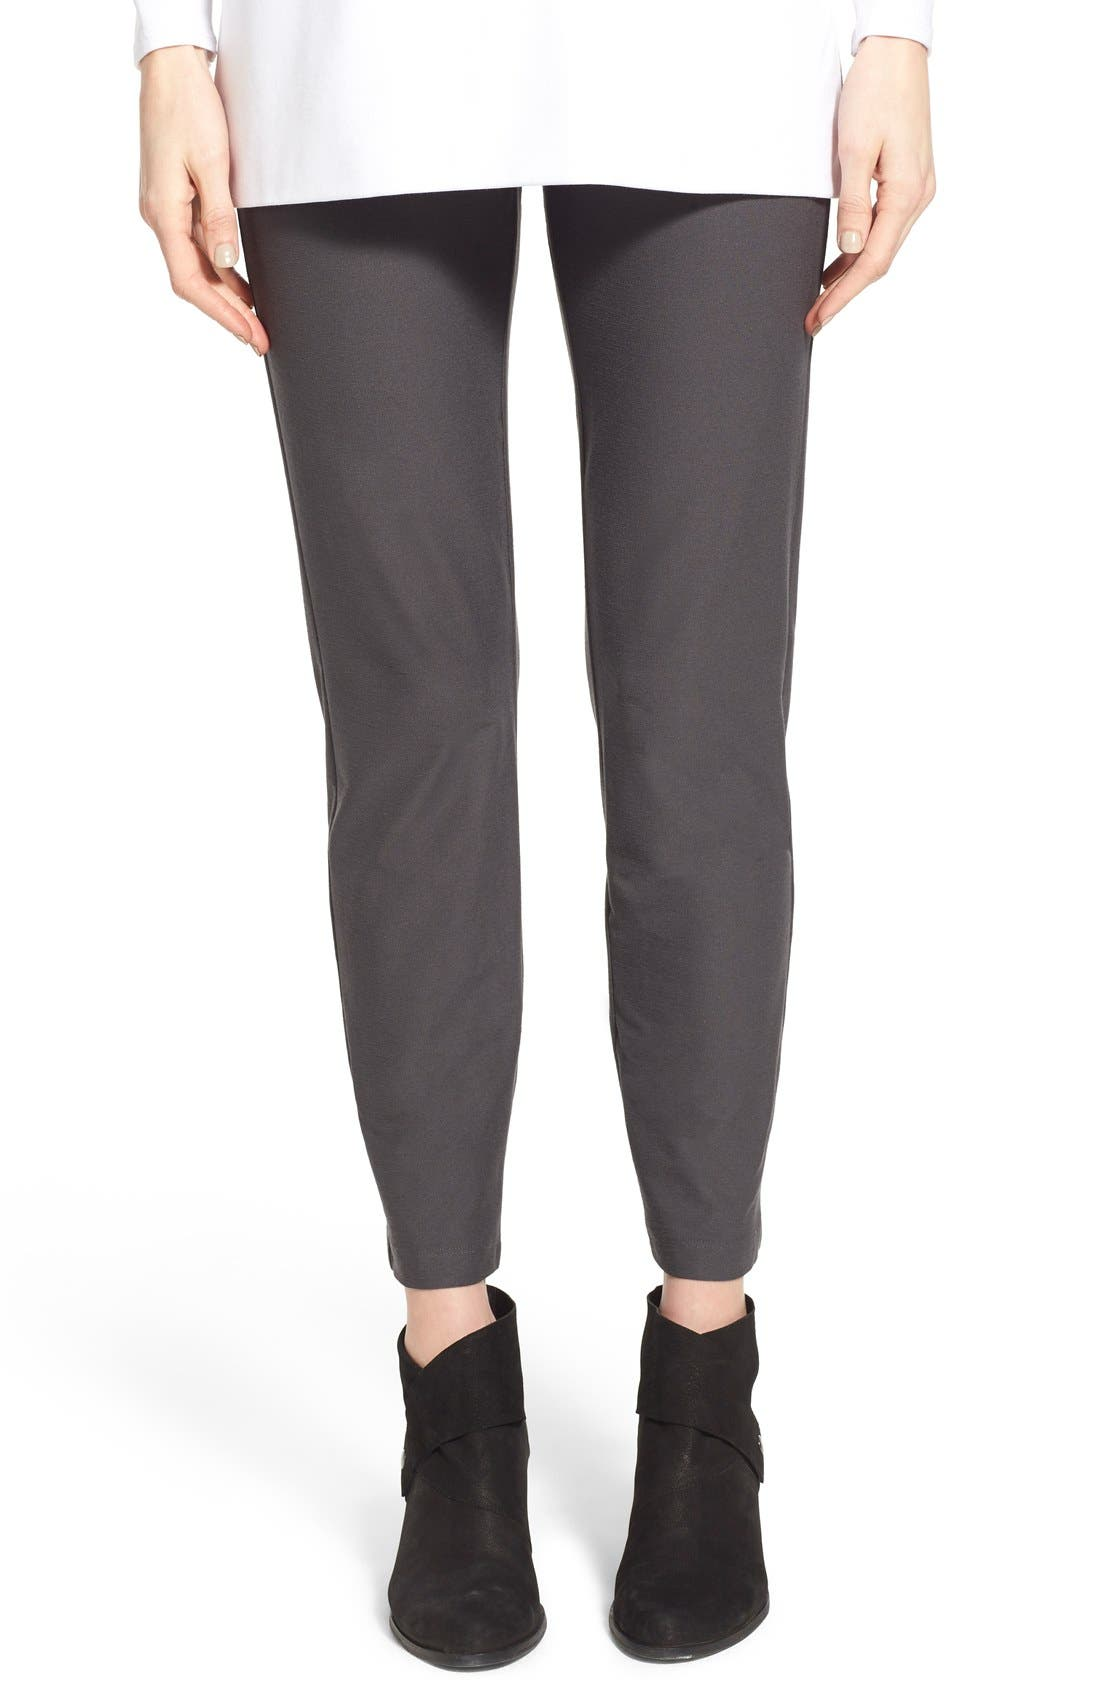 Alternate Image 1 Selected - Eileen Fisher Stretch Crepe Slim Ankle Pants (Regular & Petite)